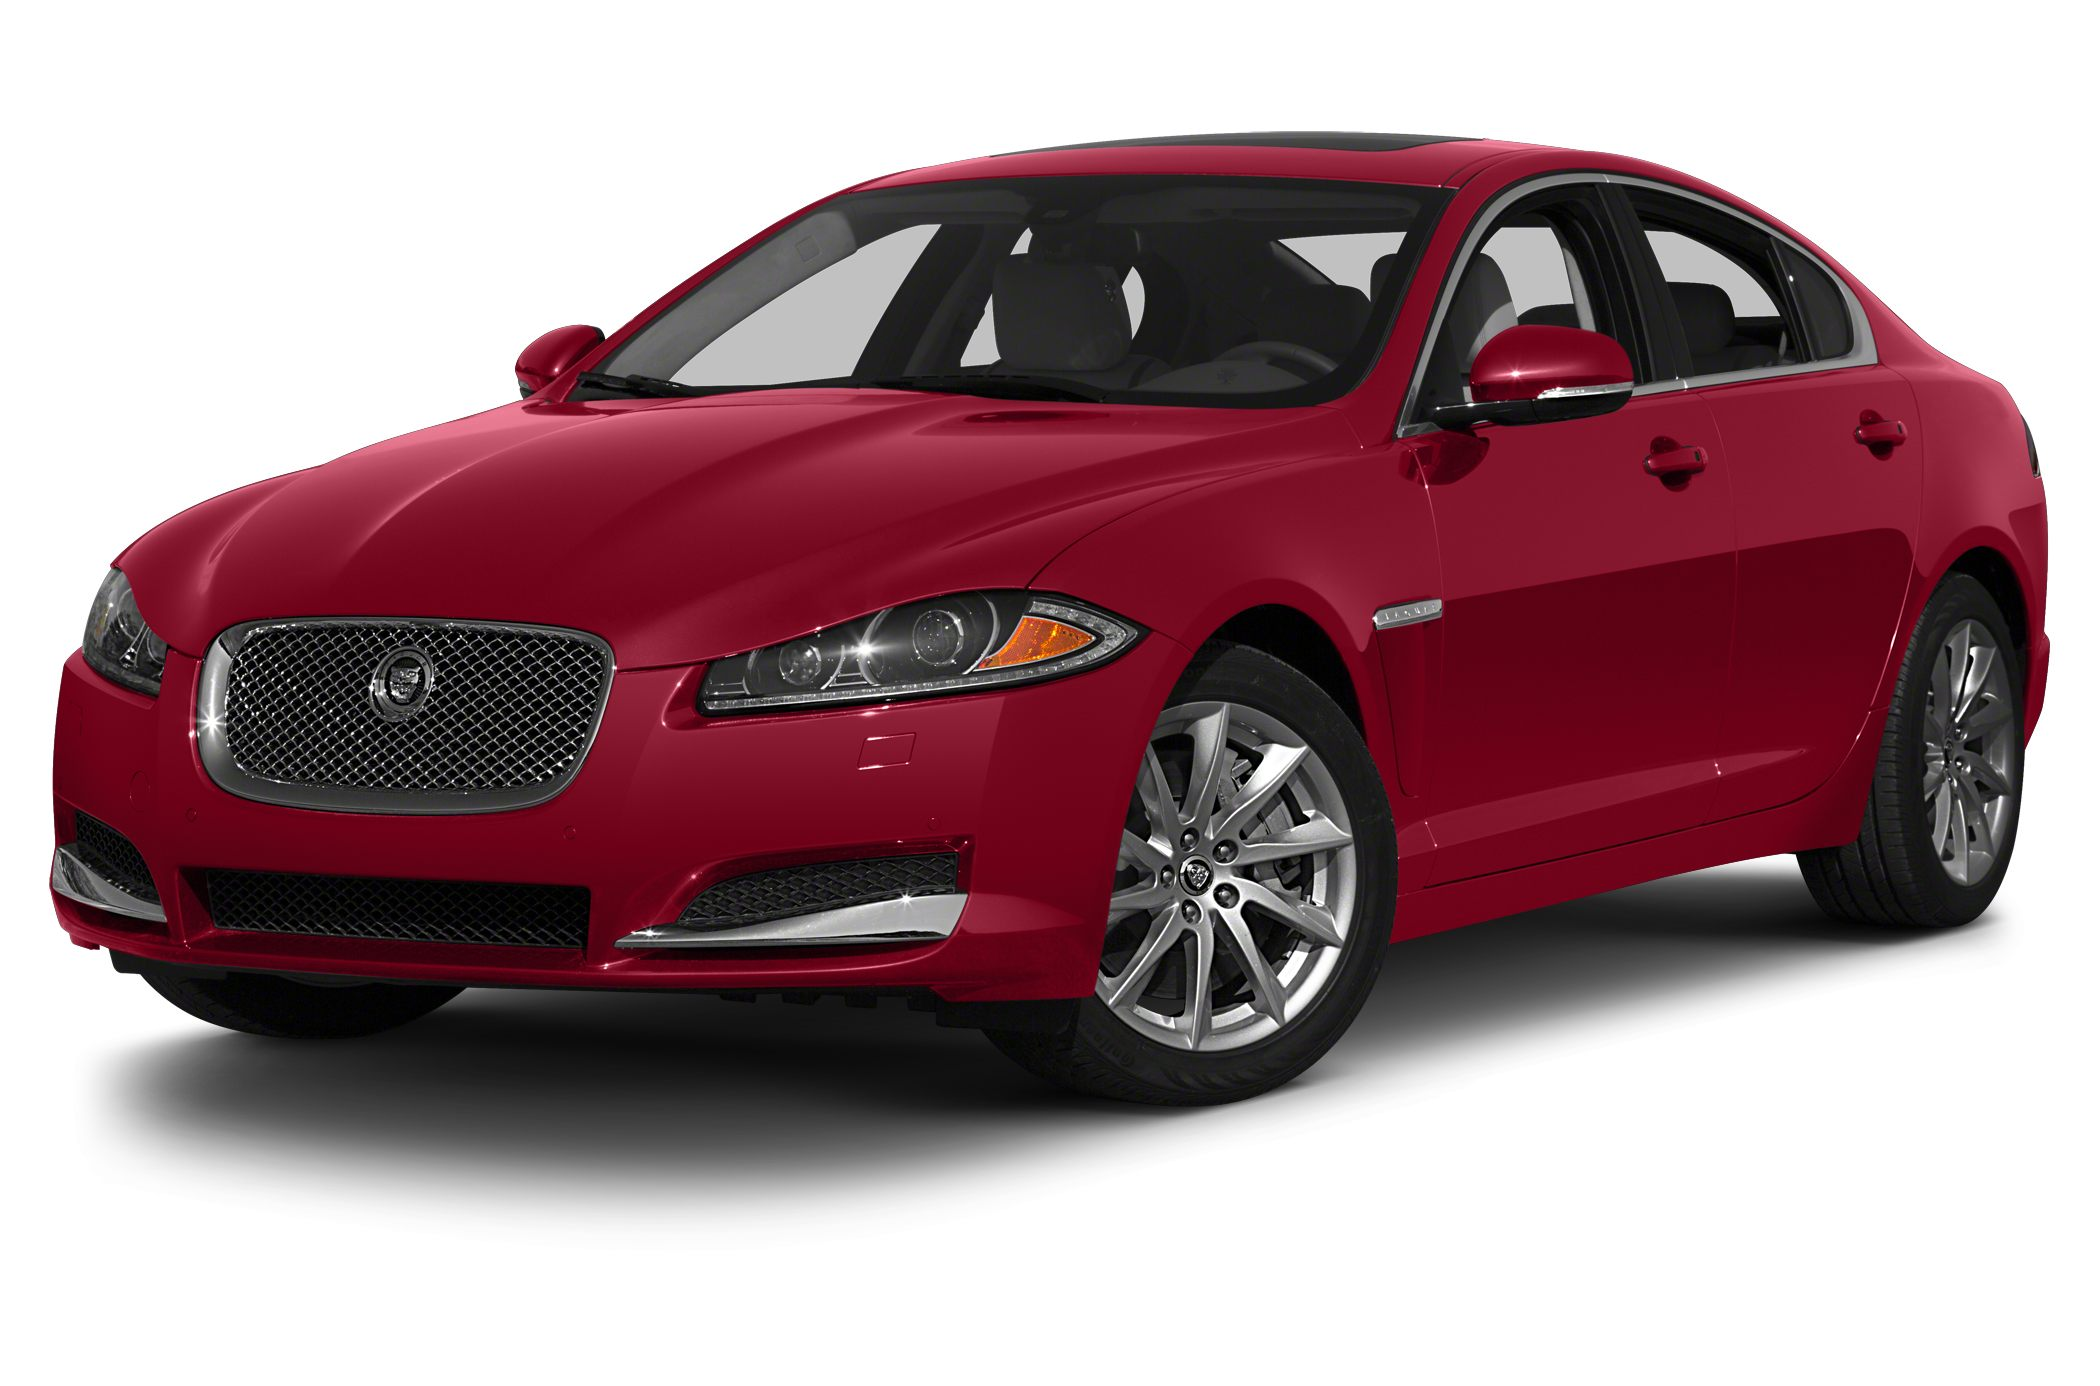 2013 Jaguar XF I4 T Sedan for sale in San Diego for $34,995 with 13,444 miles